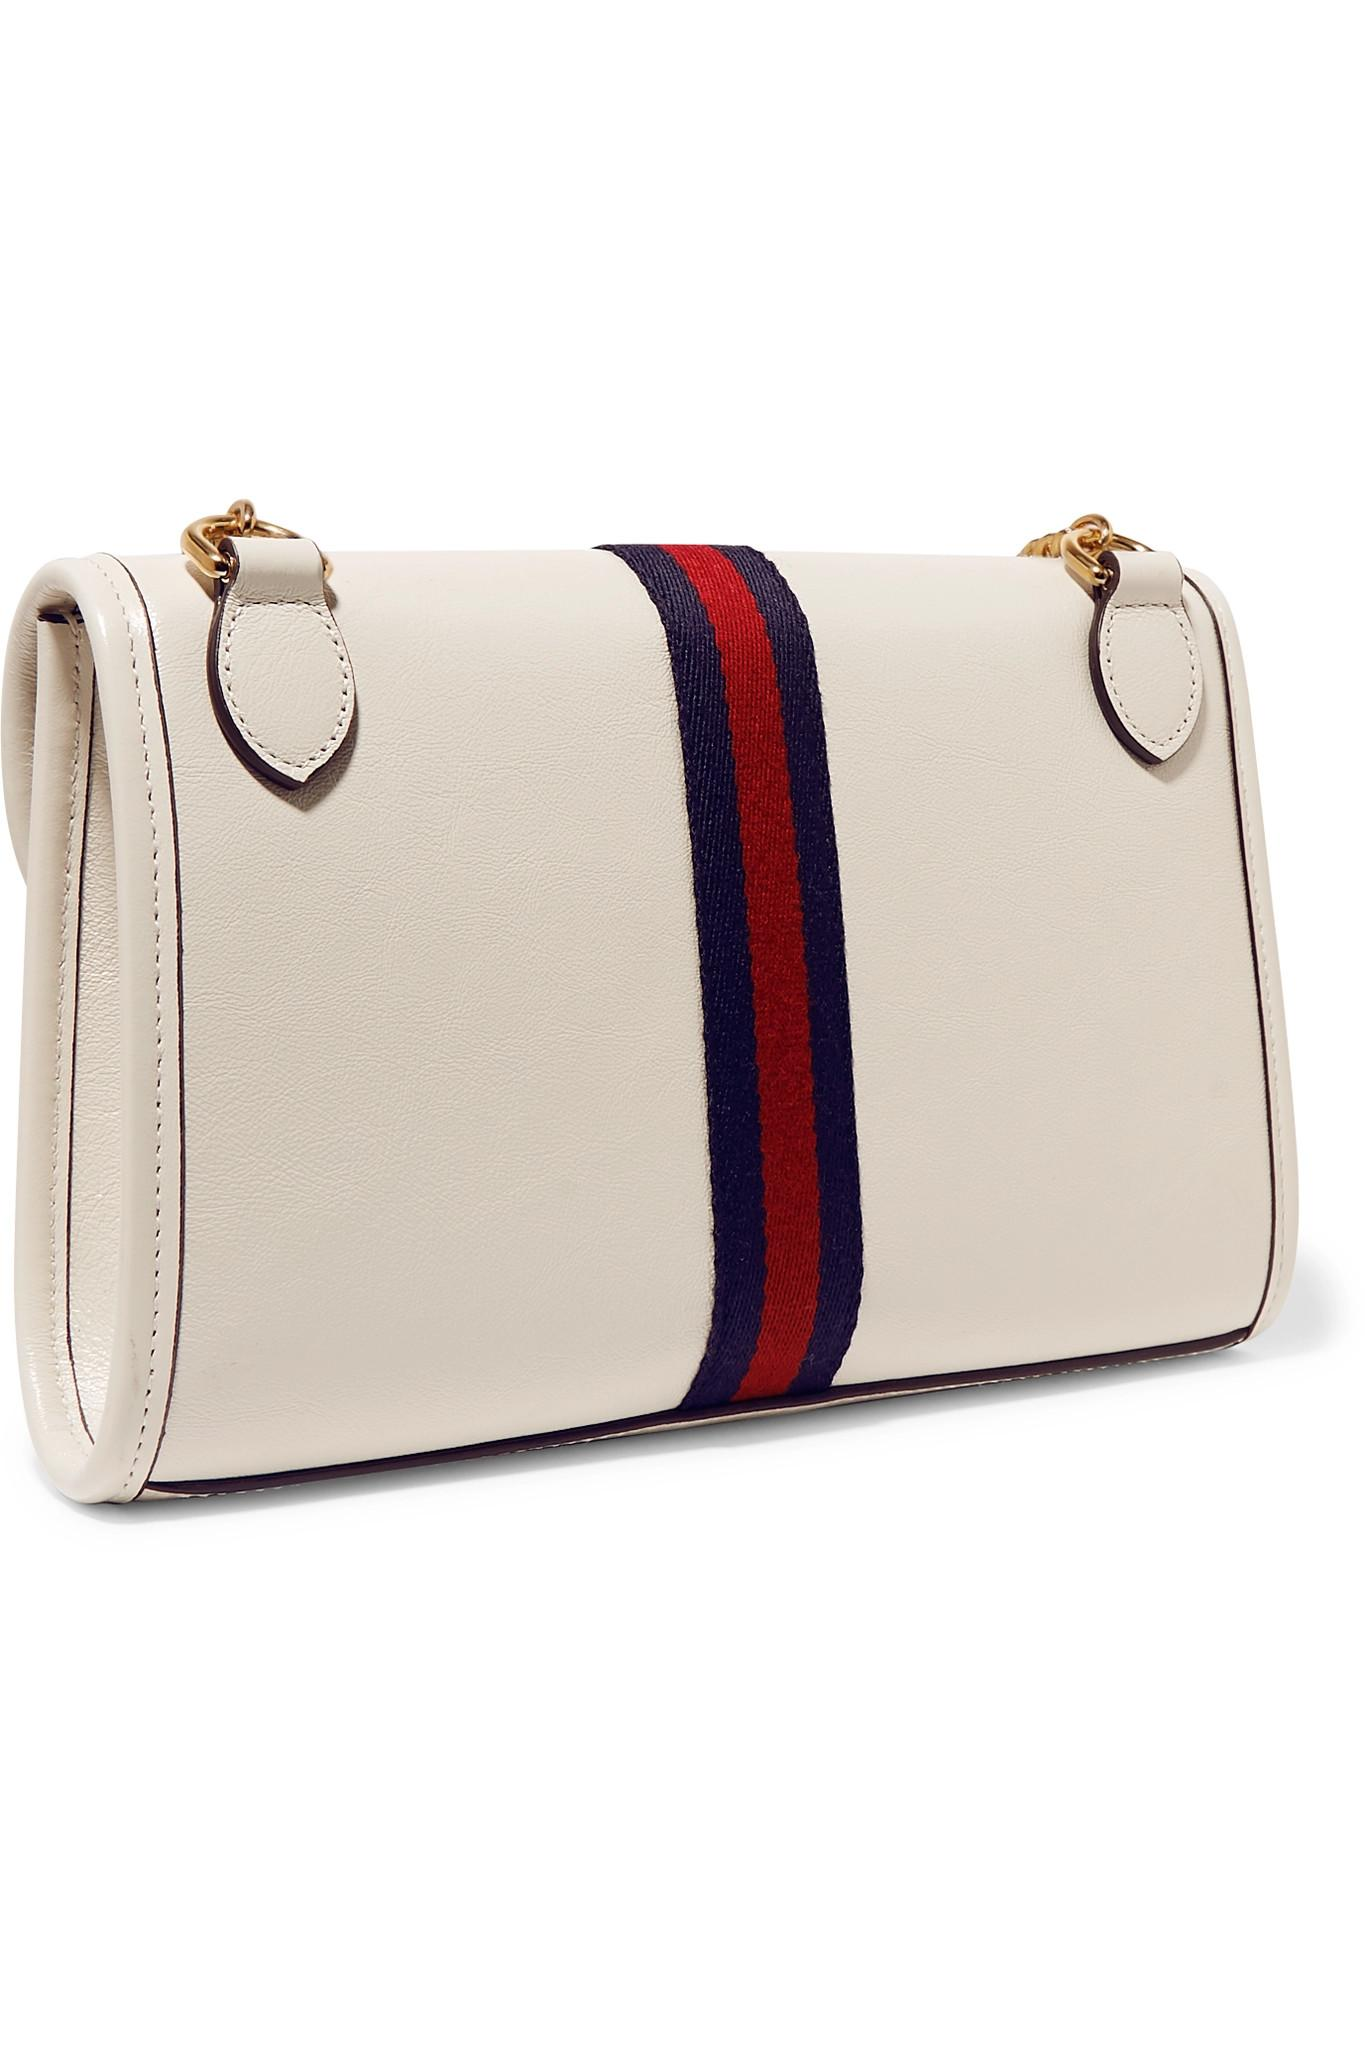 365ebb56427f Lyst - Gucci Rajah Small Embellished Leather Shoulder Bag in White